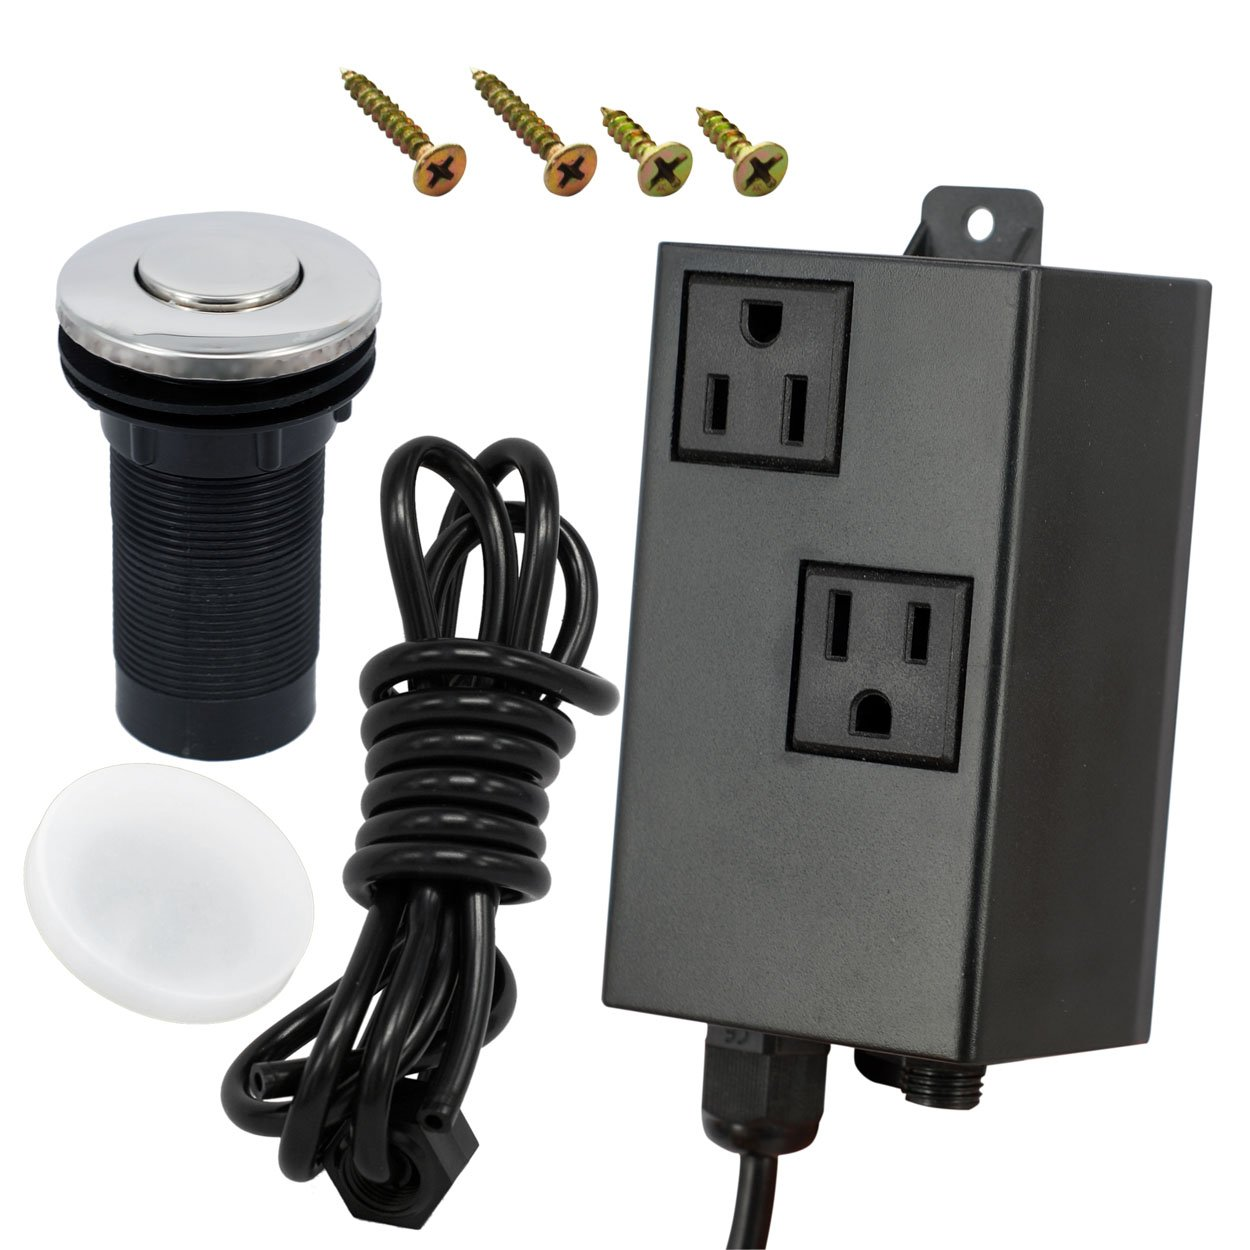 DIKOO Dual Outlet Garbage Disposal Air Switch Kit Sink Top Waste Disposal On/Off Switch Kit Food and Waste Disposals Part by DIKOO